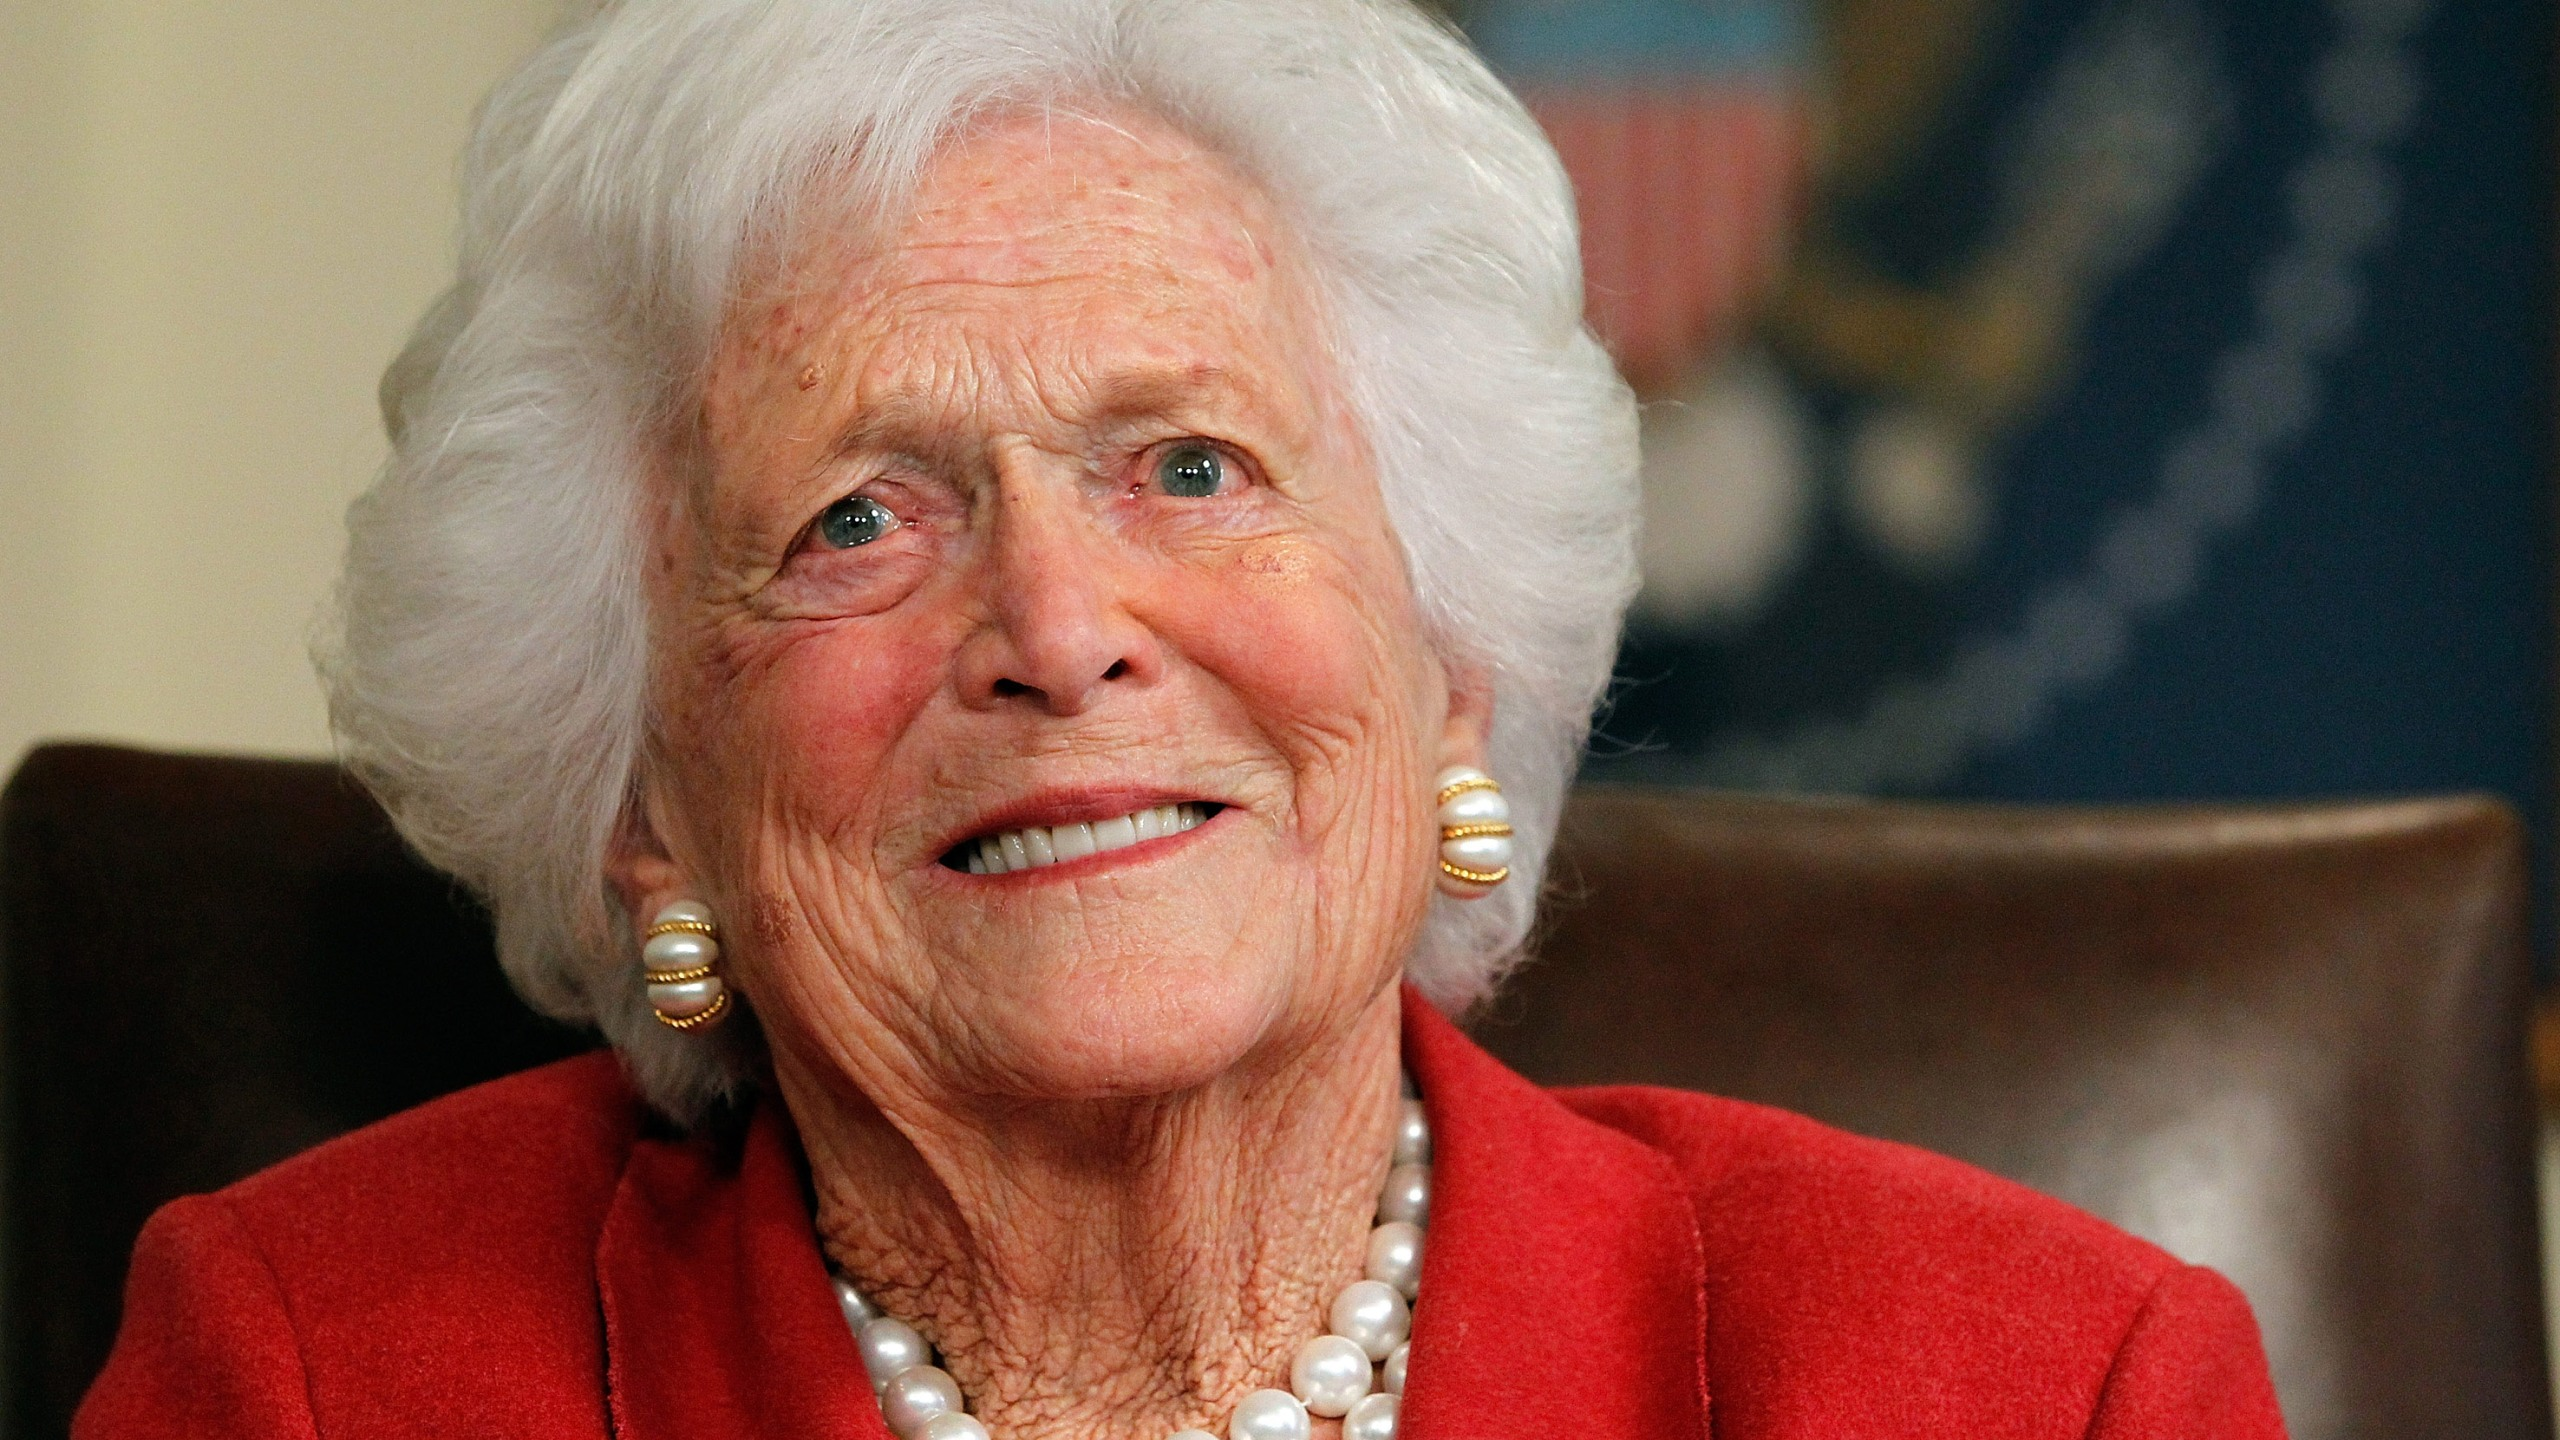 Barbara Bush talks with Republican presidential candidate, former Massachusetts Gov. Mitt Romney at Former President George H. W. Bush's office on March 29, 2012 in Houston, Texas. (Credit: Tom Pennington/Getty Images)